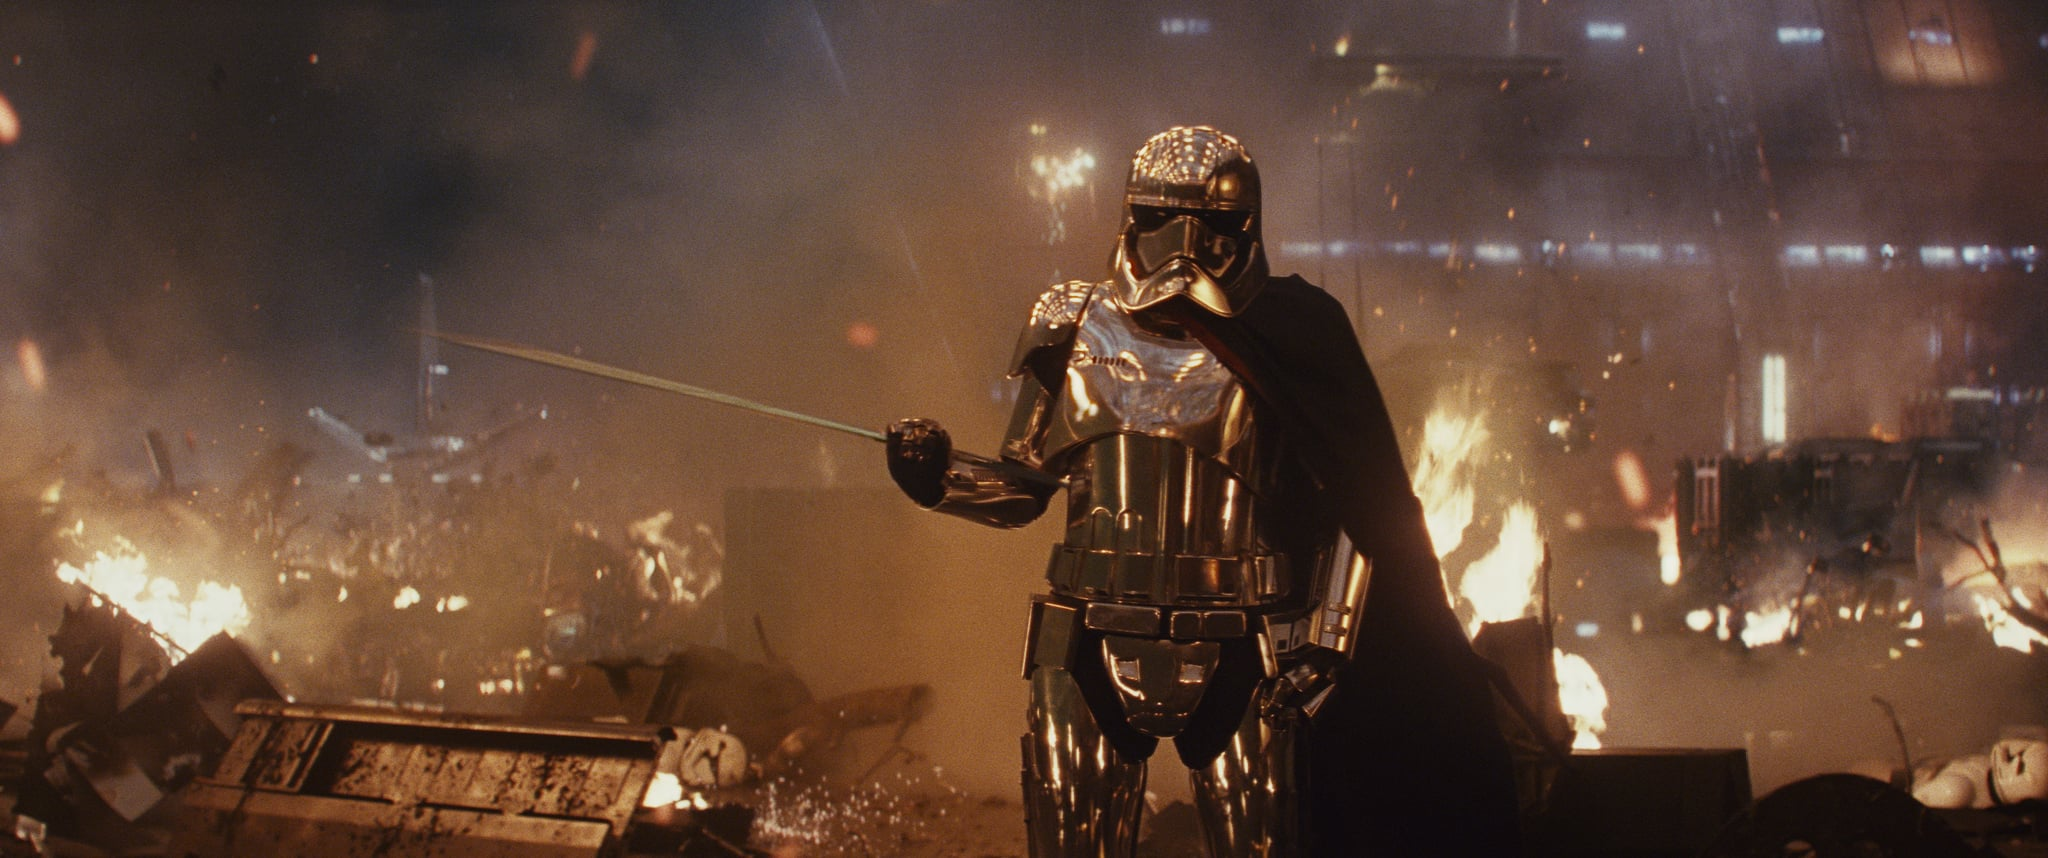 Who Plays Captain Phasma In Star Wars Popsugar Entertainment